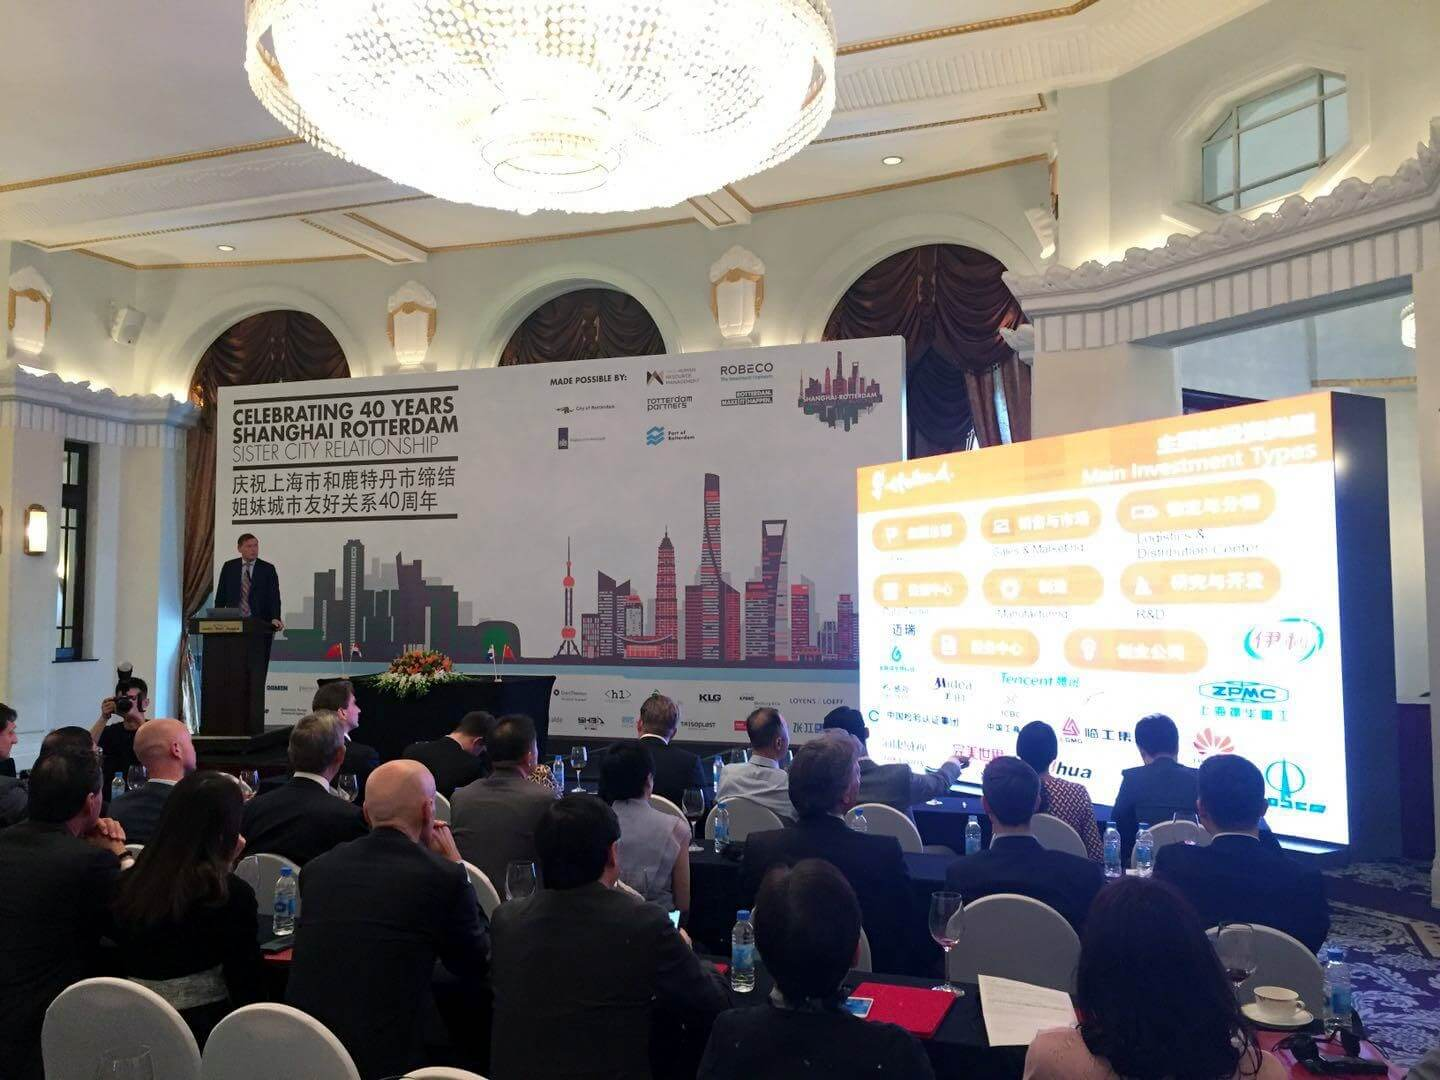 Day 3: Celebration of the Shanghai Rotterdam 40 years sister city relationship + Invest in Holland seminar ft. the Rotterdam region